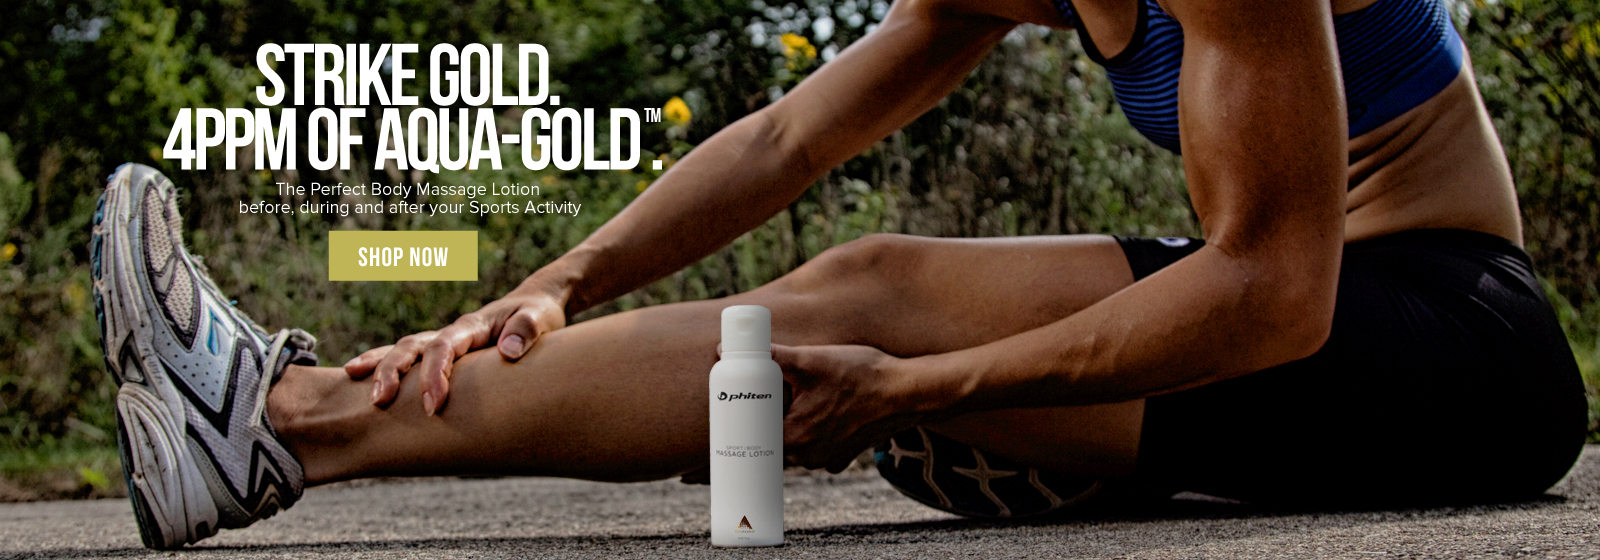 Aqua-Gold Sport Body Massage Lotion